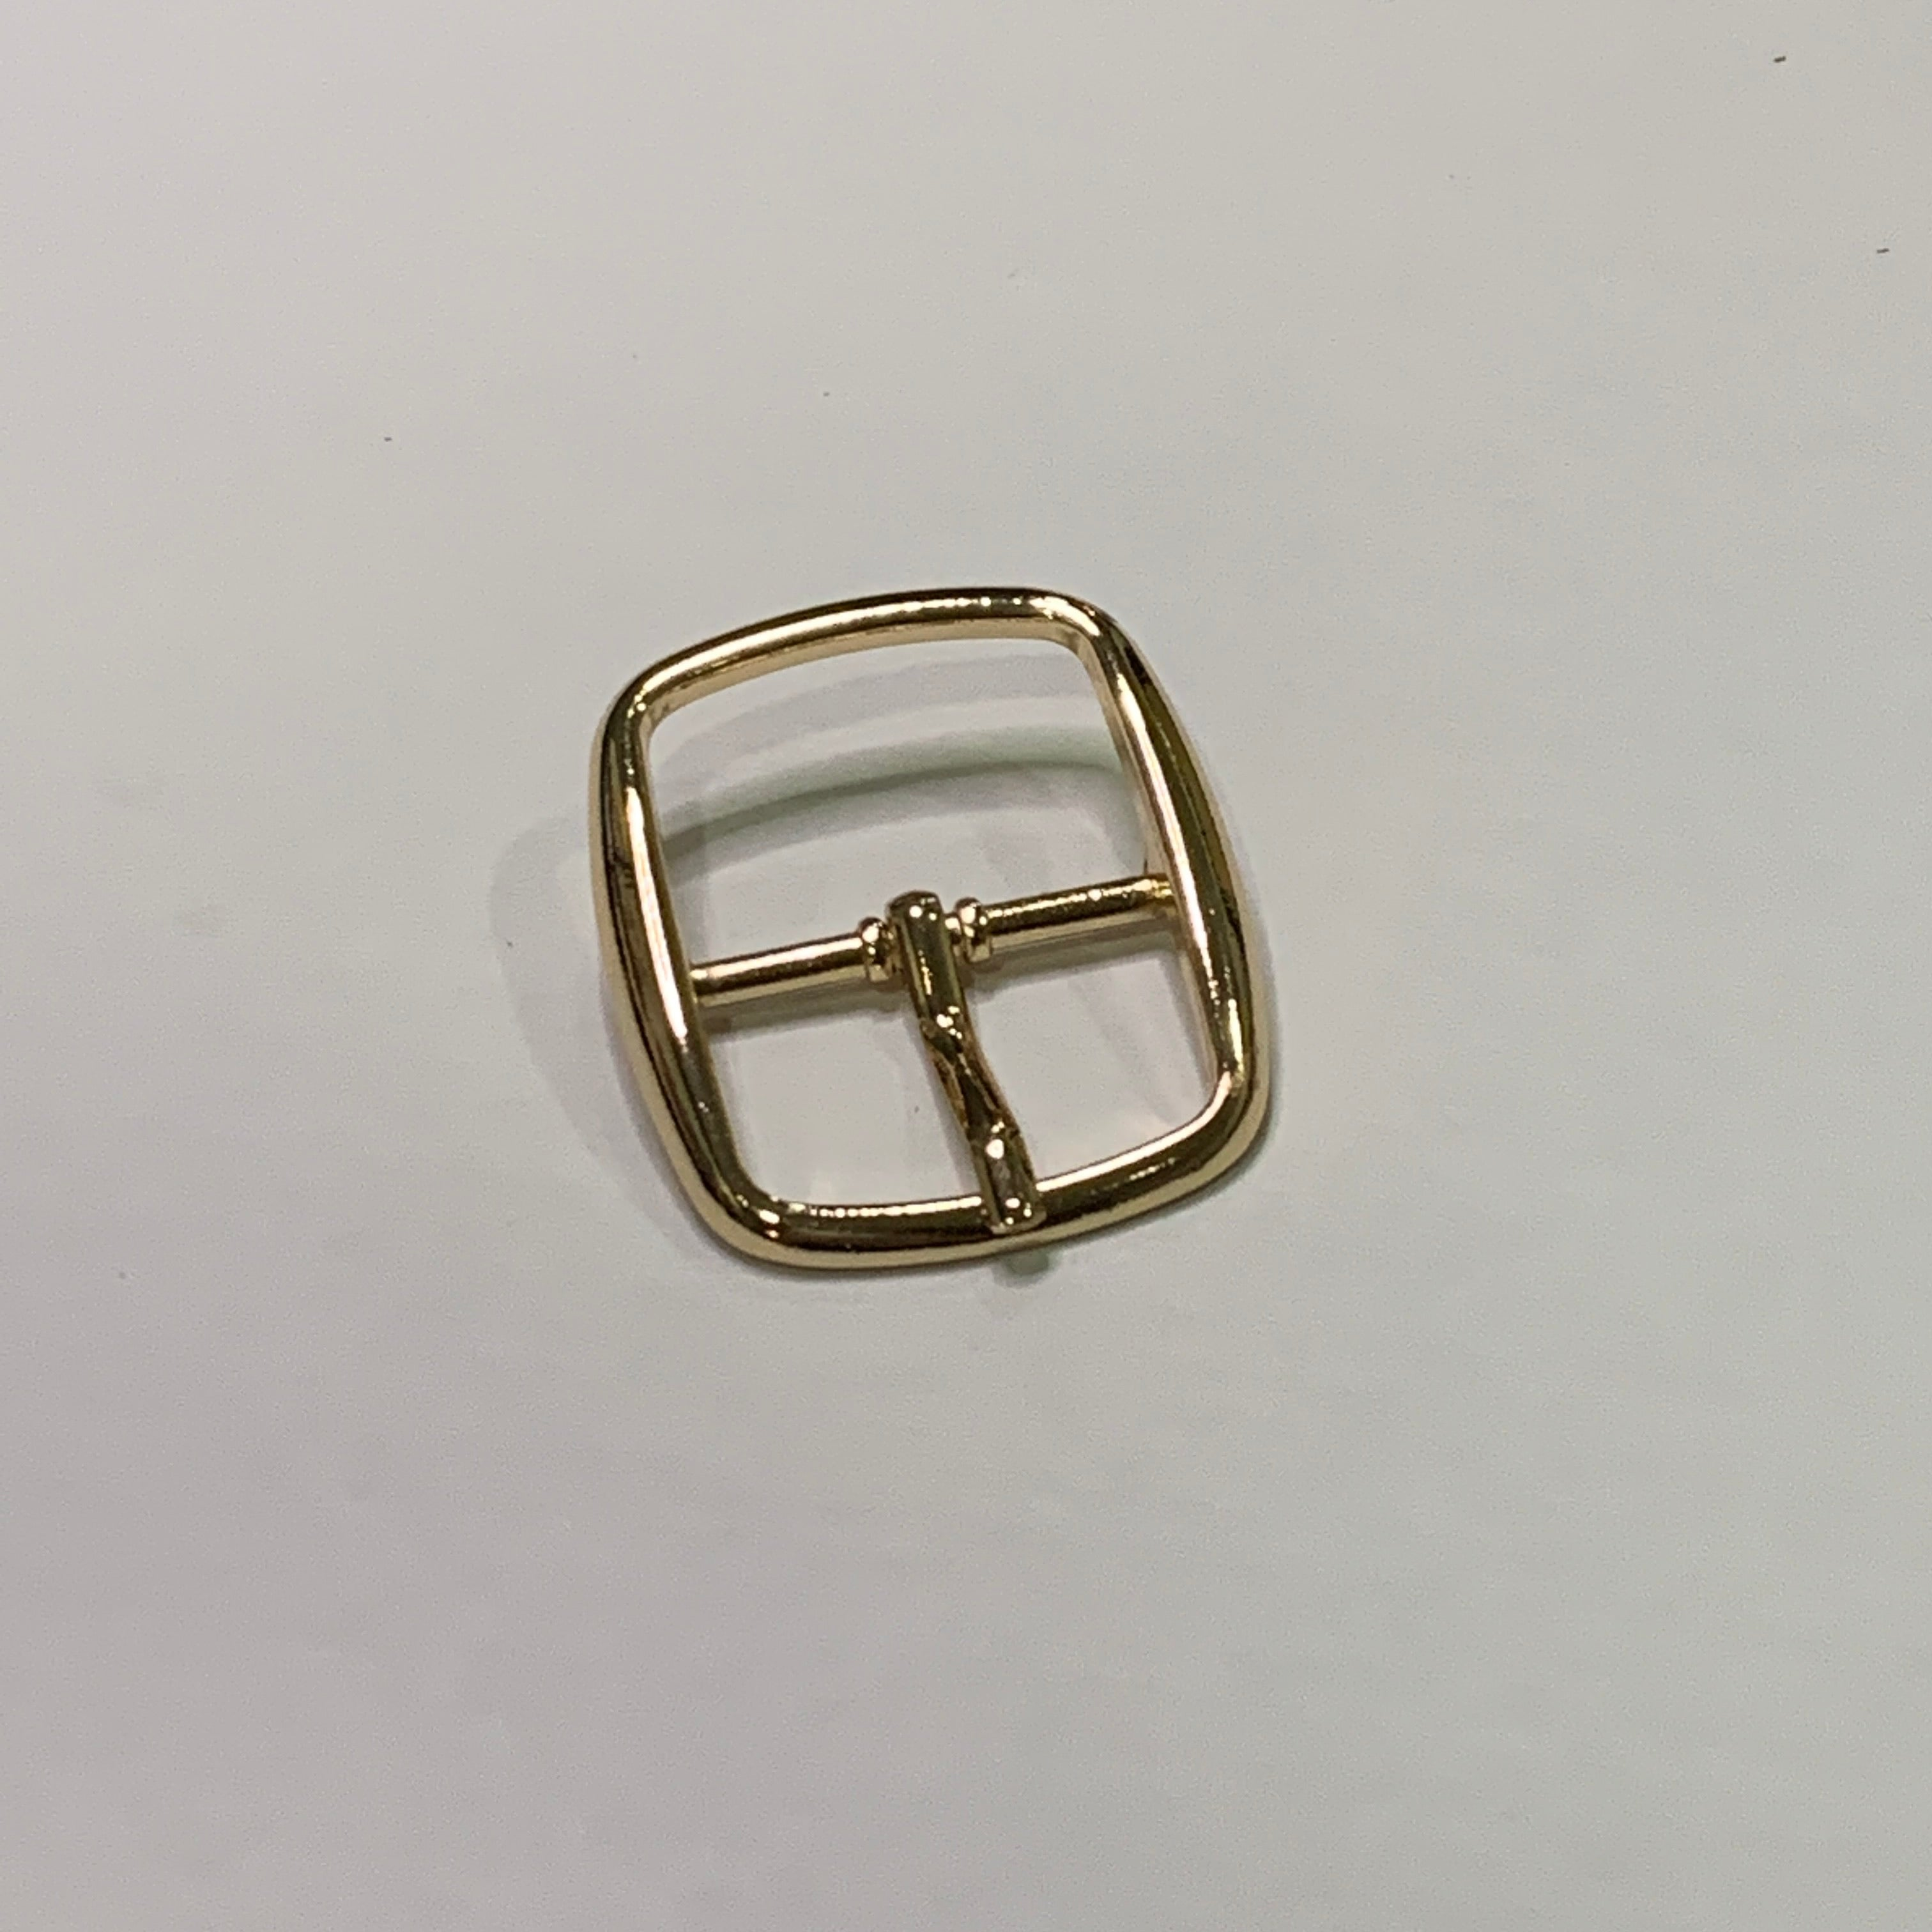 25mm Glossy Gold Centre Bar Buckle